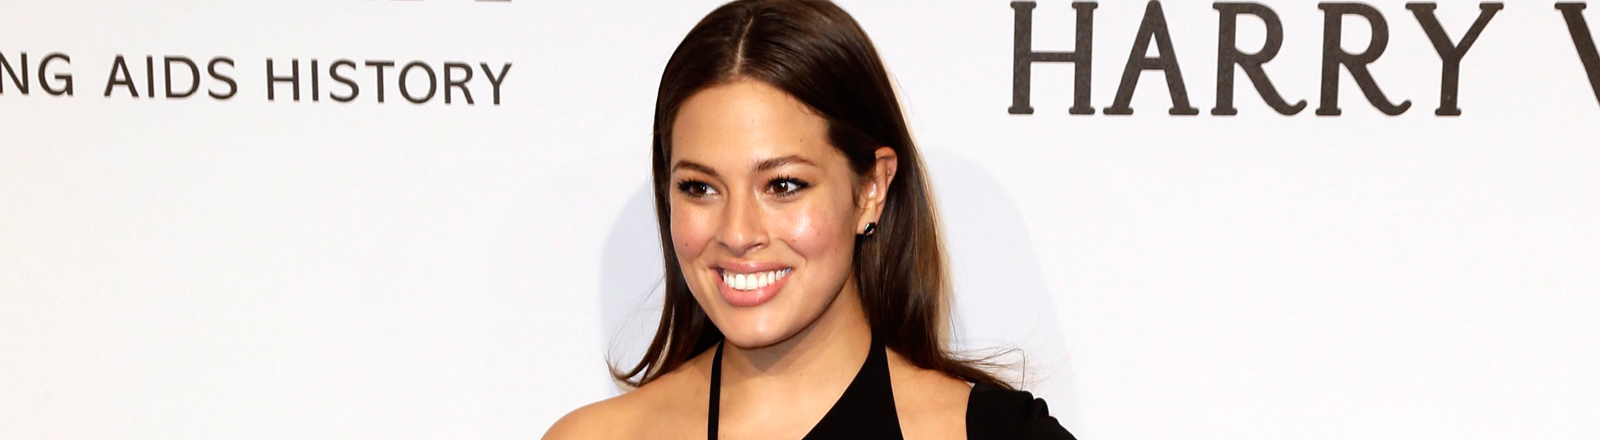 Das Plus-Size-Model Ashley Graham bei der Präsentation der Sports Illustrated 2015.